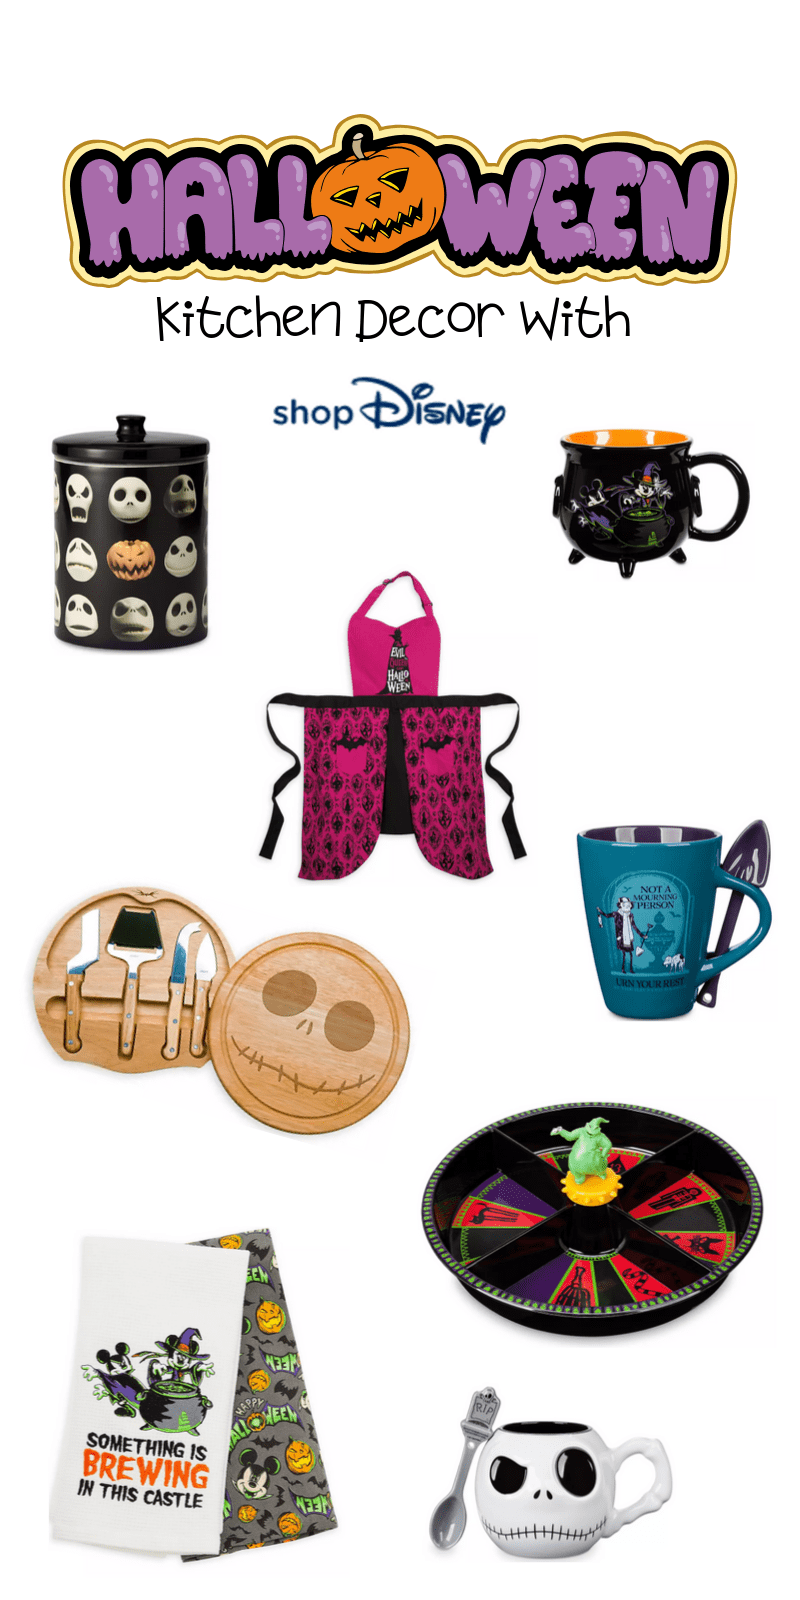 Here are the best in Disney Halloween Inspired Kitchen decor. This fantastic post rounds up the spooky and adorableness of ShopDisney's Halloween Collection for 2019.  #ad @ShopDisney #halloween2019 #disney #disneylove #disneymagic #waltdisney #disneyprincess #mickeymouse #disneyphoto #disneylife #disneyfan #mickey #disneyaddict #disnerd #starwars #halloween